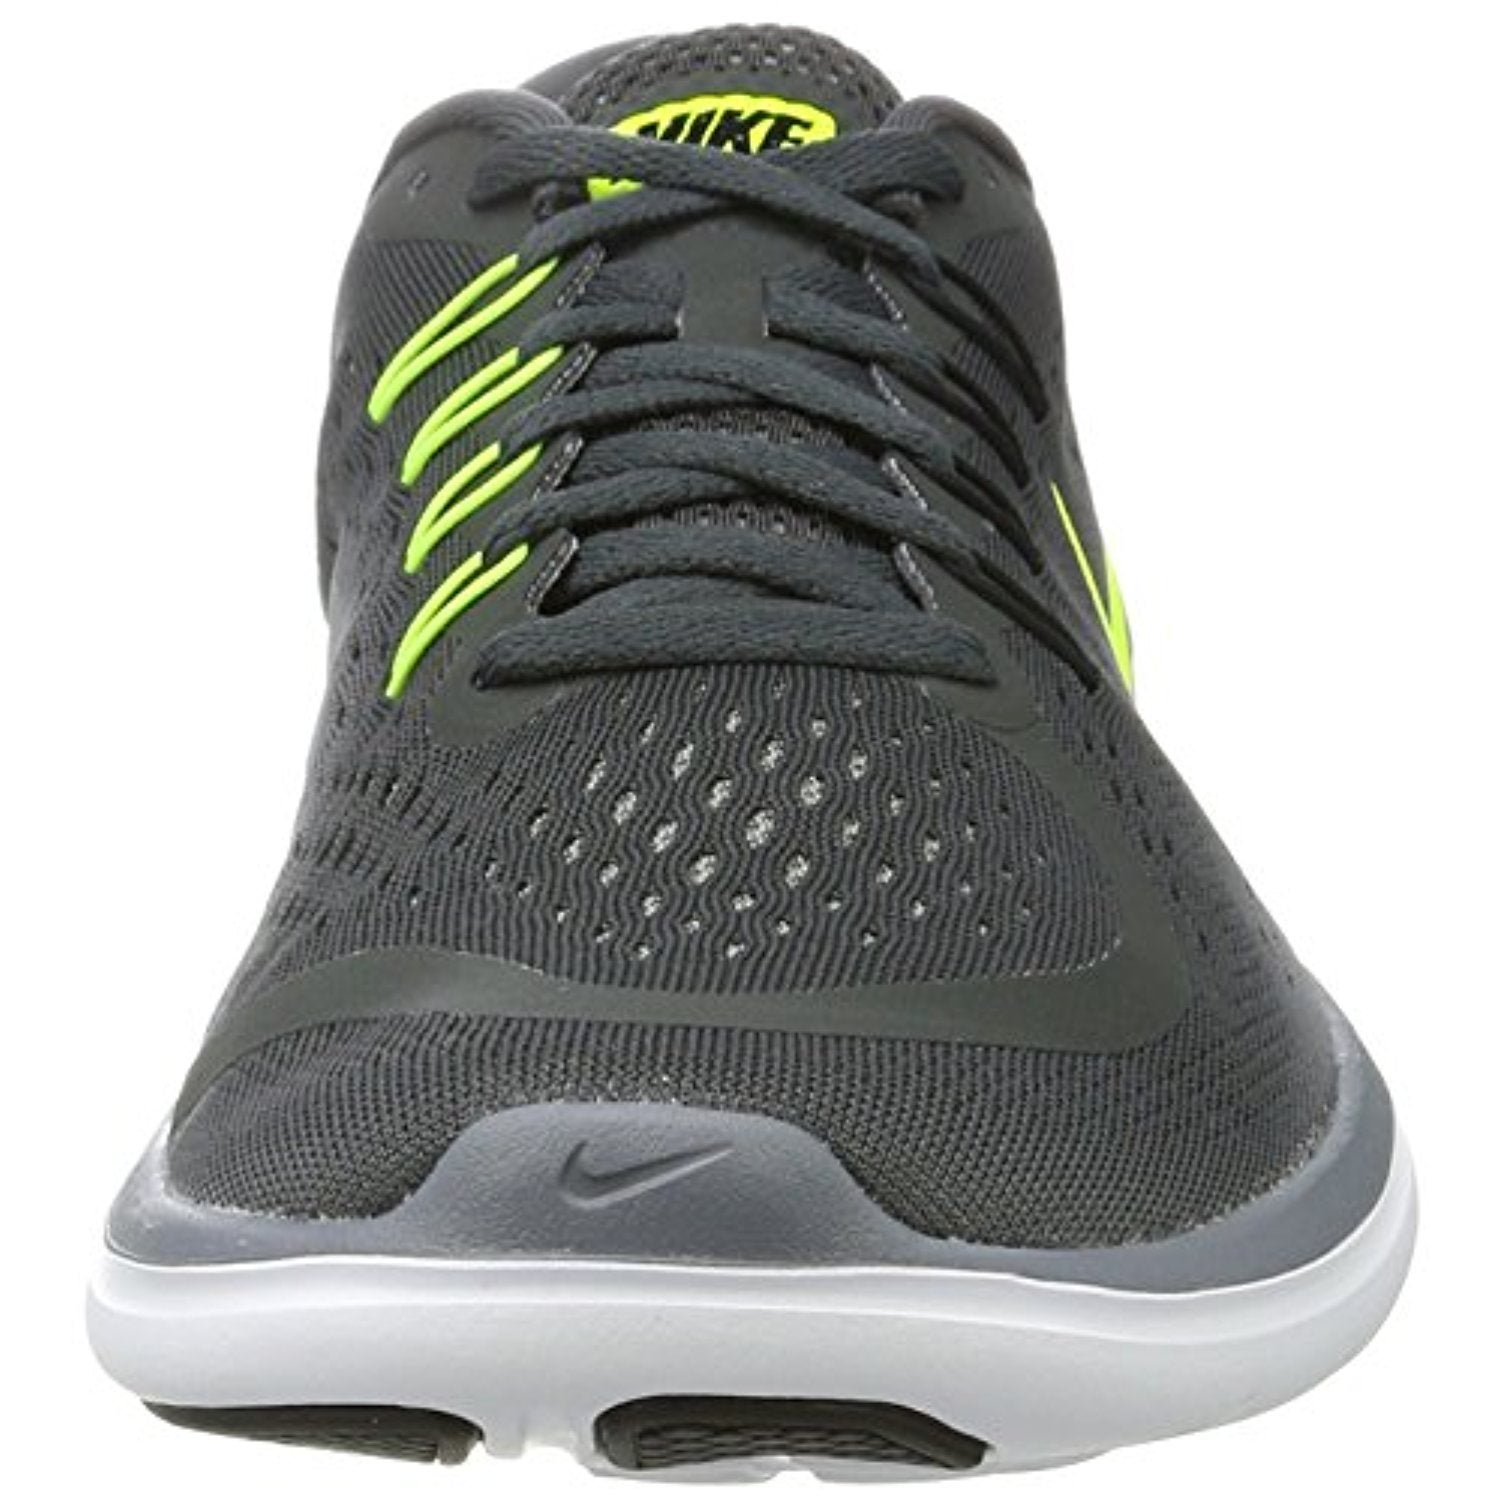 Shop Men s Nike Flex RN 2017 Running Shoe Anthracite Volt Cool Grey Black -  Free Shipping Today - Overstock - 18278321 676a270c1